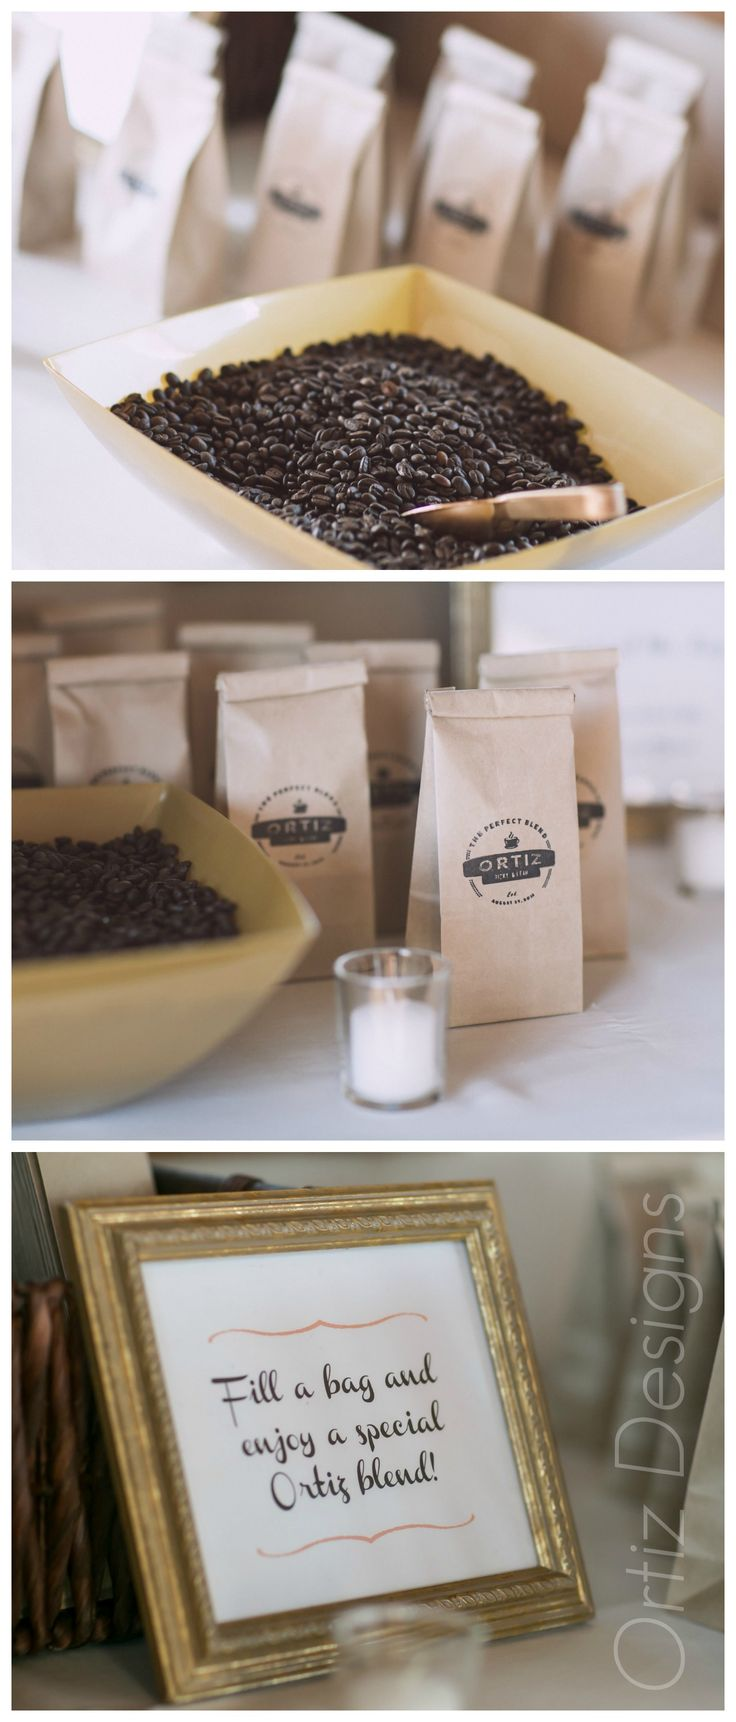 Coffee mug wedding favors - Coffe Wedding Favors The Perfect Blend Is Such A Fun Theme For A Coffee Lover S Wedding Favor I Designed A Special Logo For Our Wedding Favor And Made